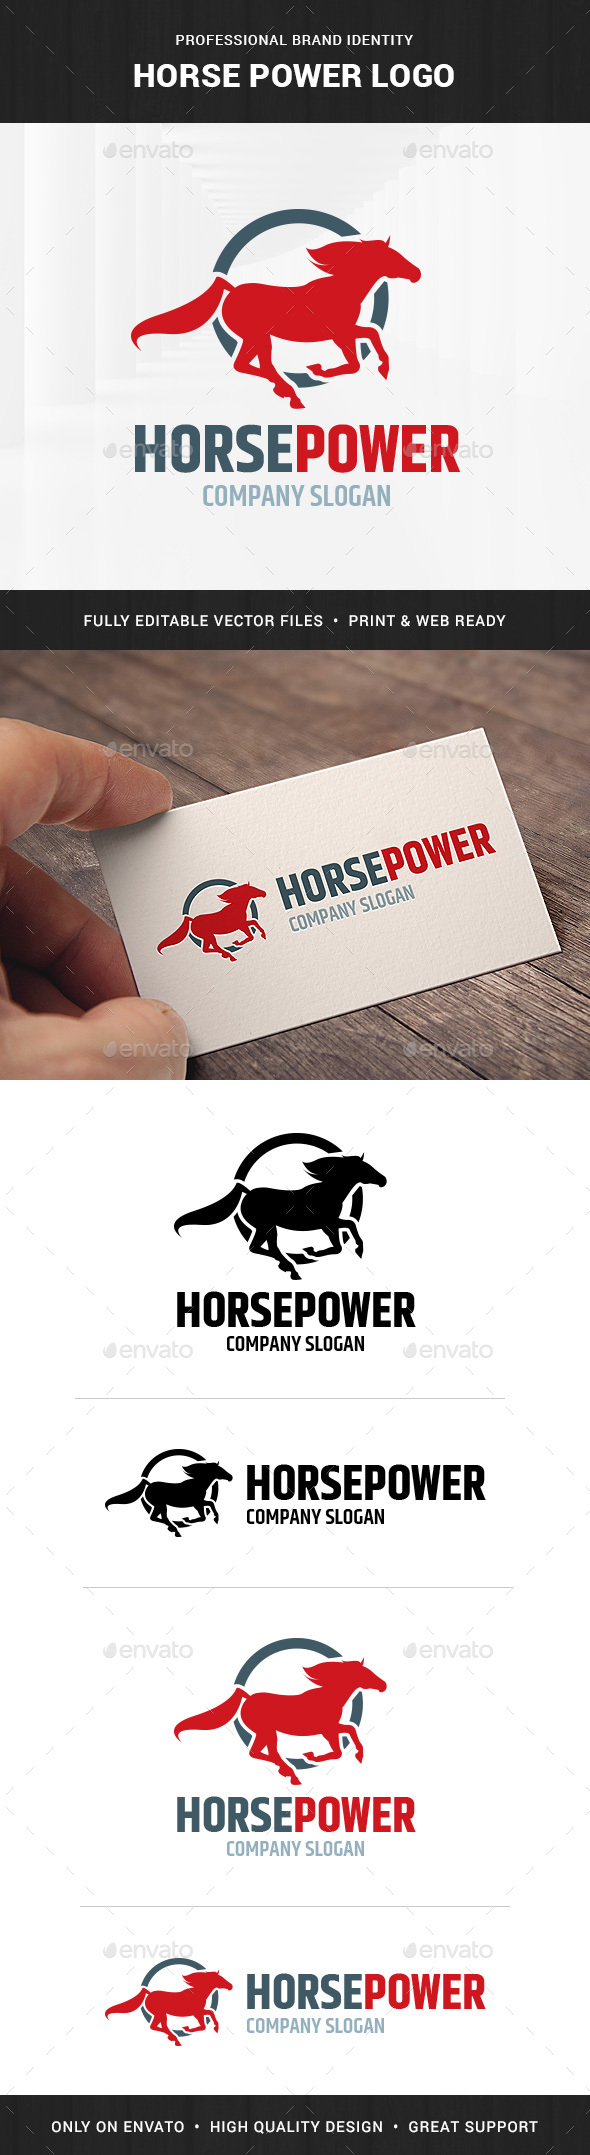 Horse Power Logo Template - Animals Logo Templates